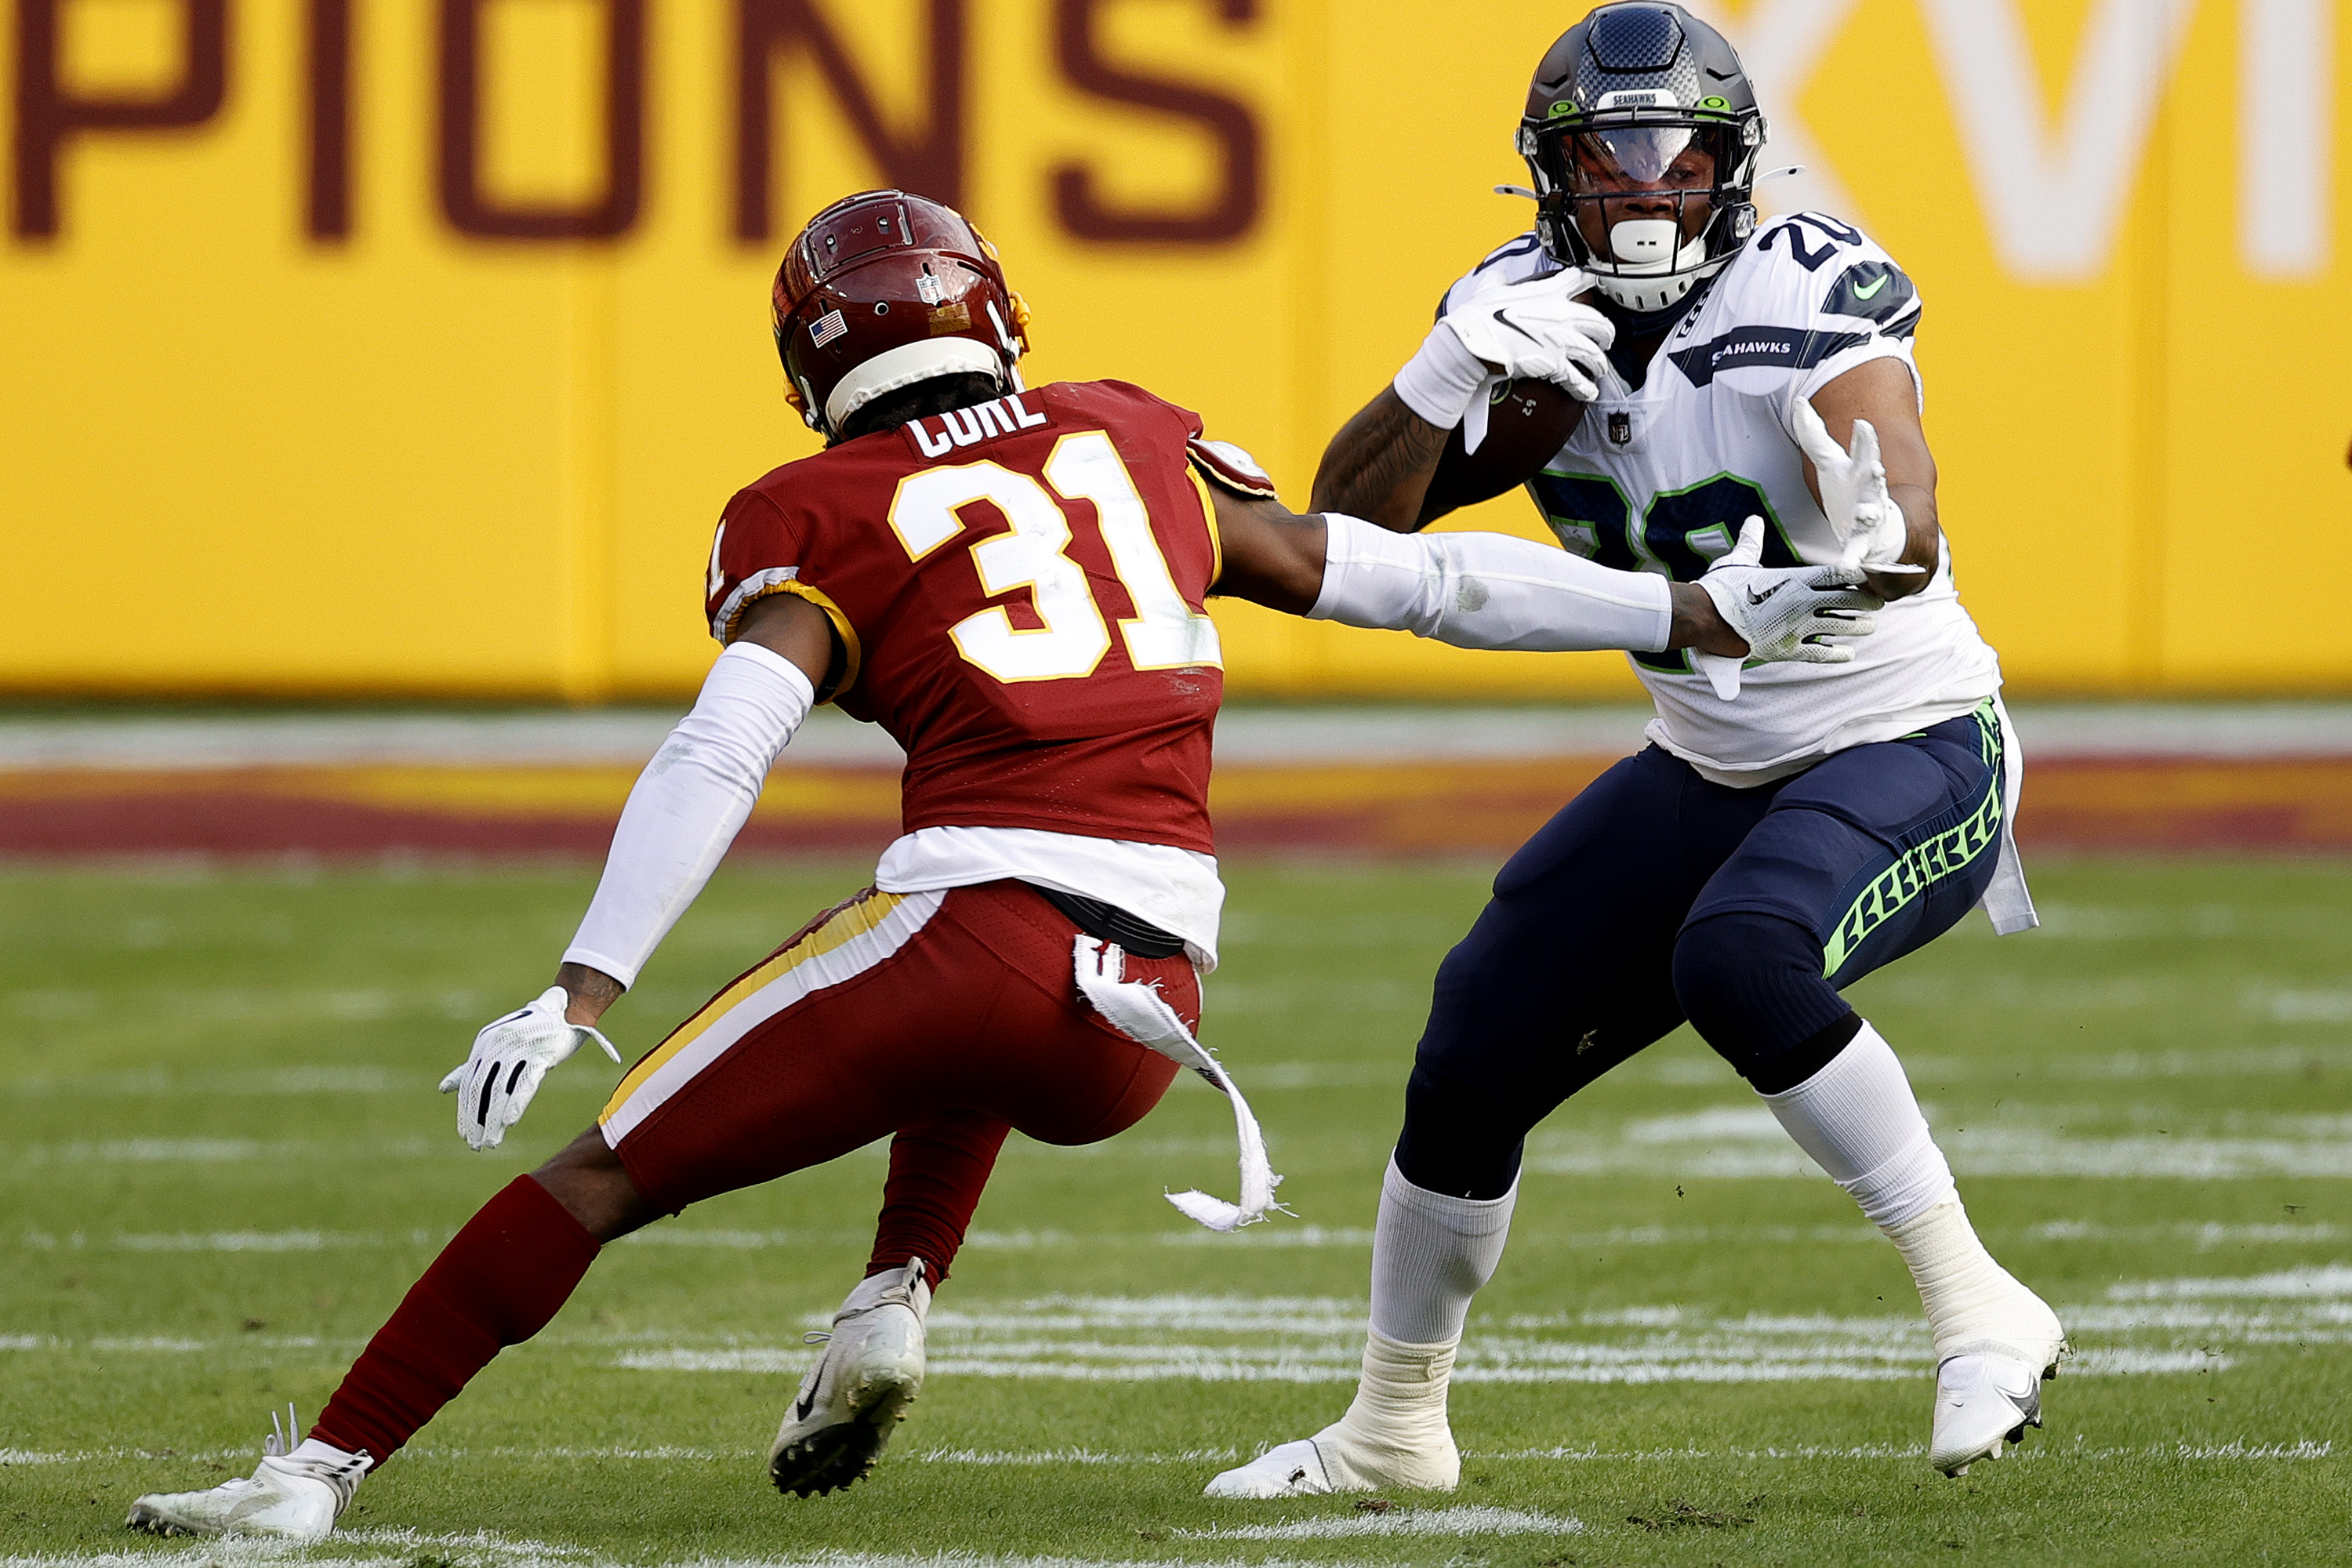 Rashaad Penny #20 of the Seattle Seahawks breaks a tackle attempt by Kamren Curl #31 of the Washington Football Team at FedExField on December 20, 2020 in Landover, Maryland.